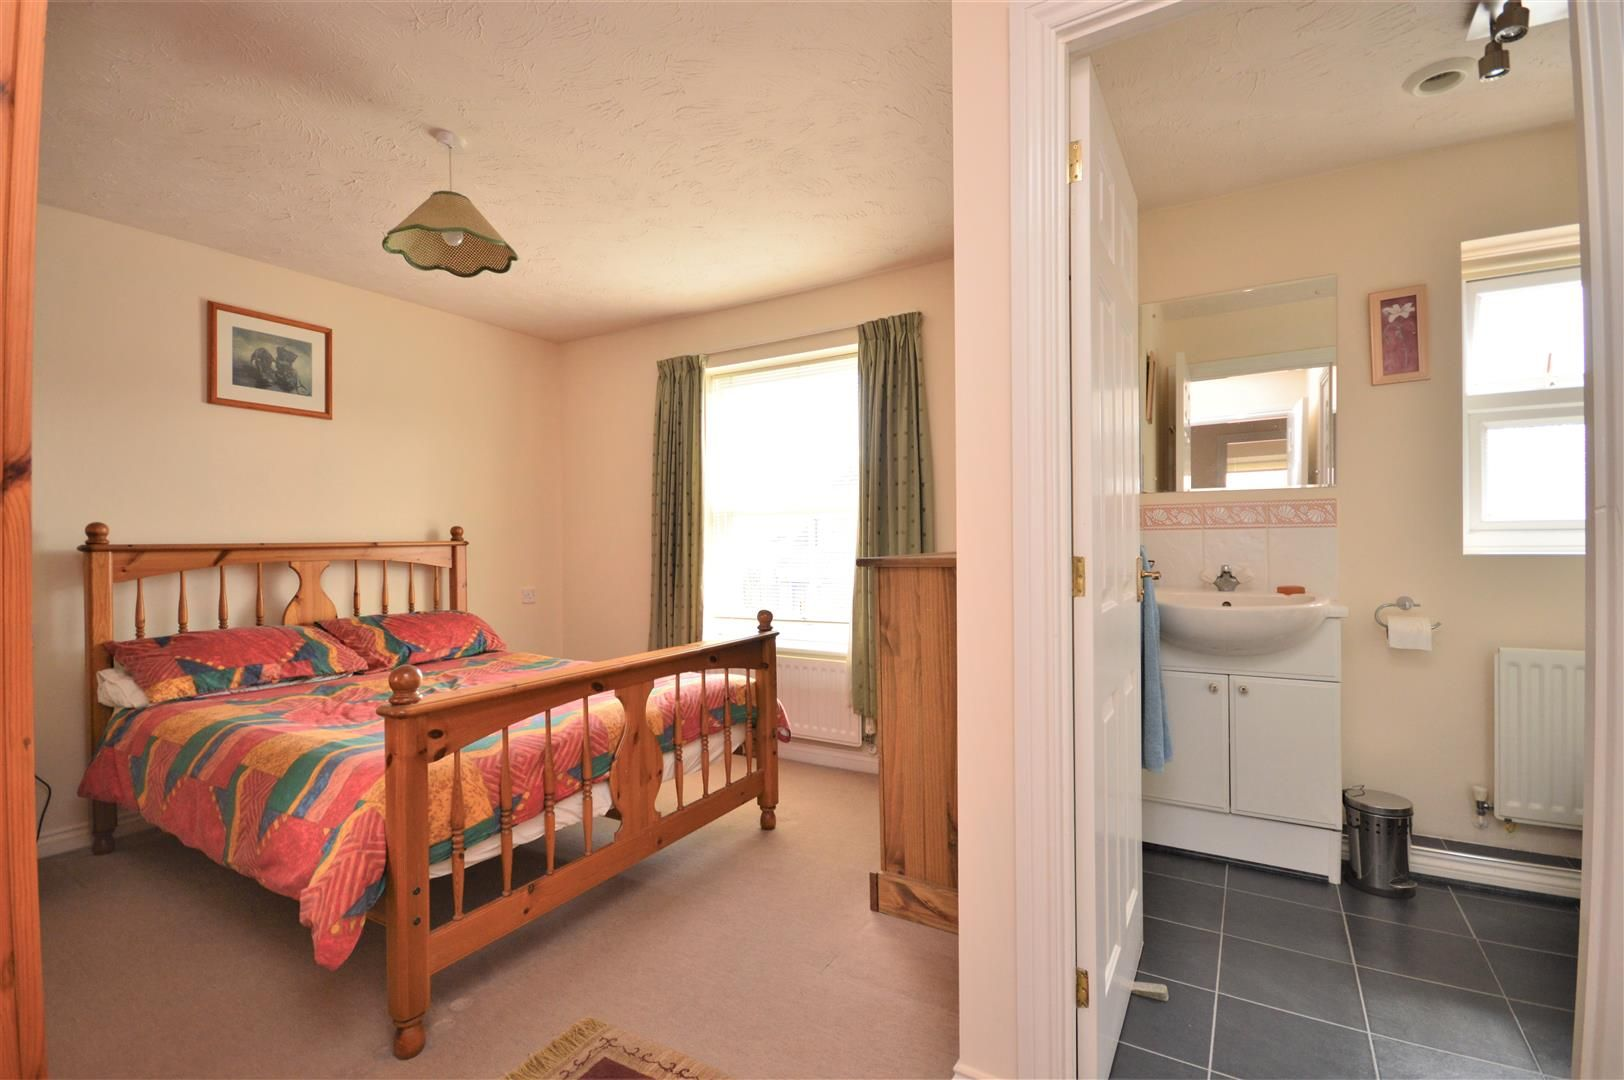 4 bed detached for sale in Belmont 7